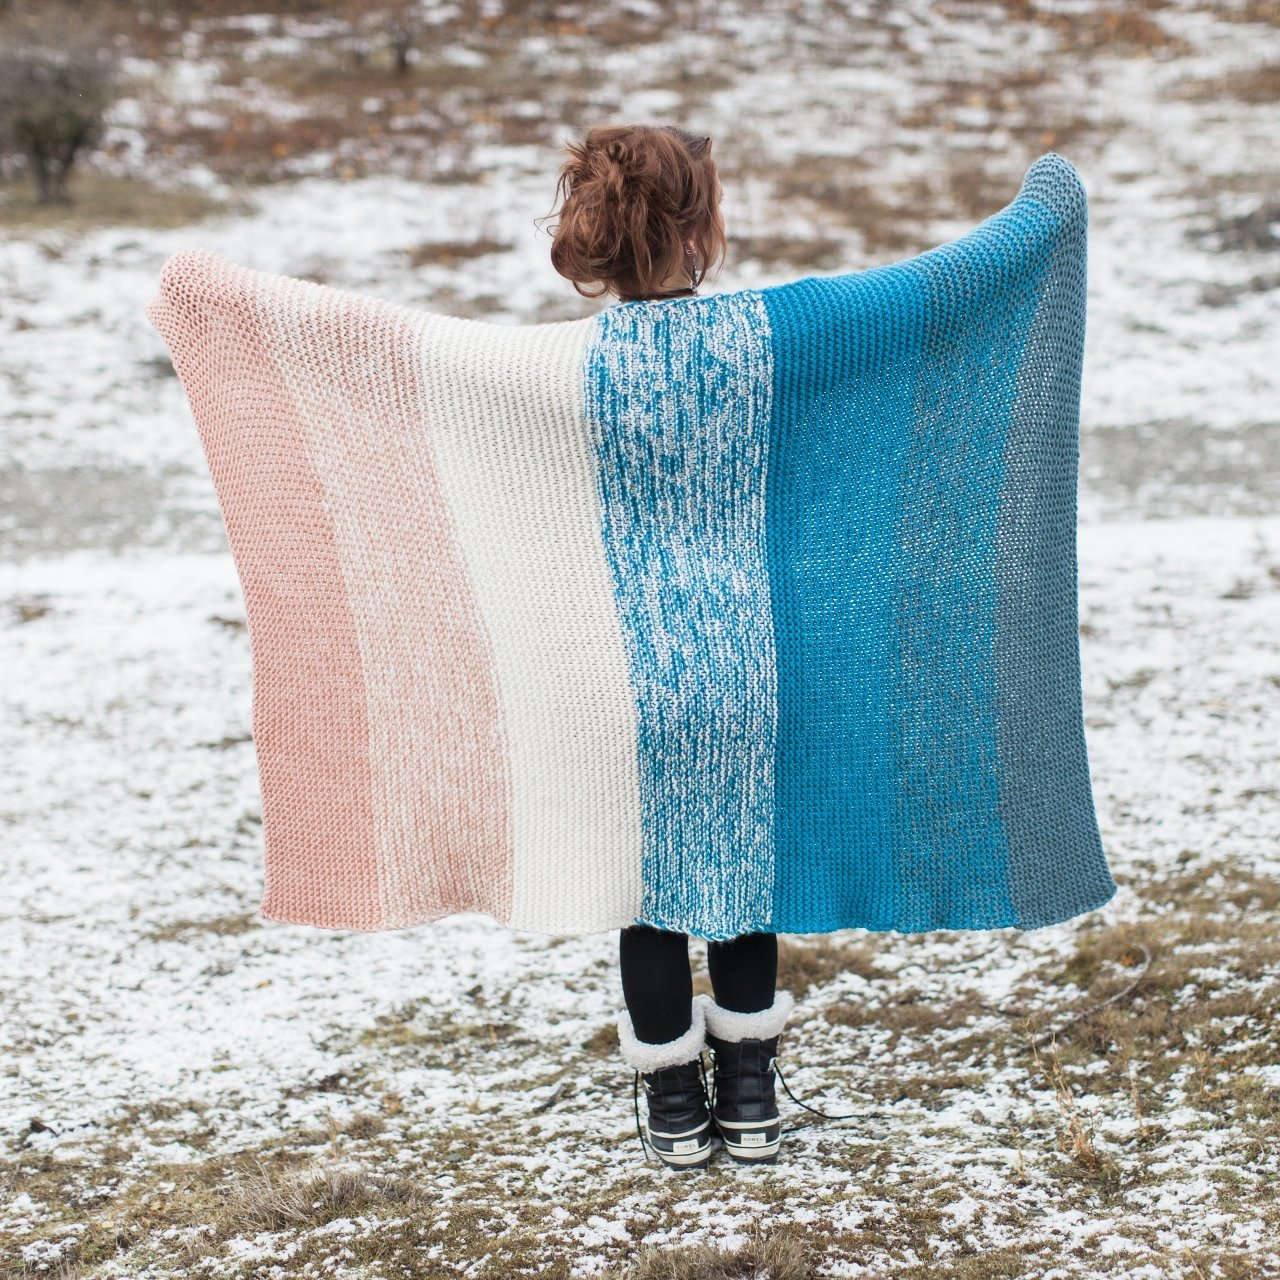 b0e7748f5f Snuggle Blanket Pattern – Knitnstitch